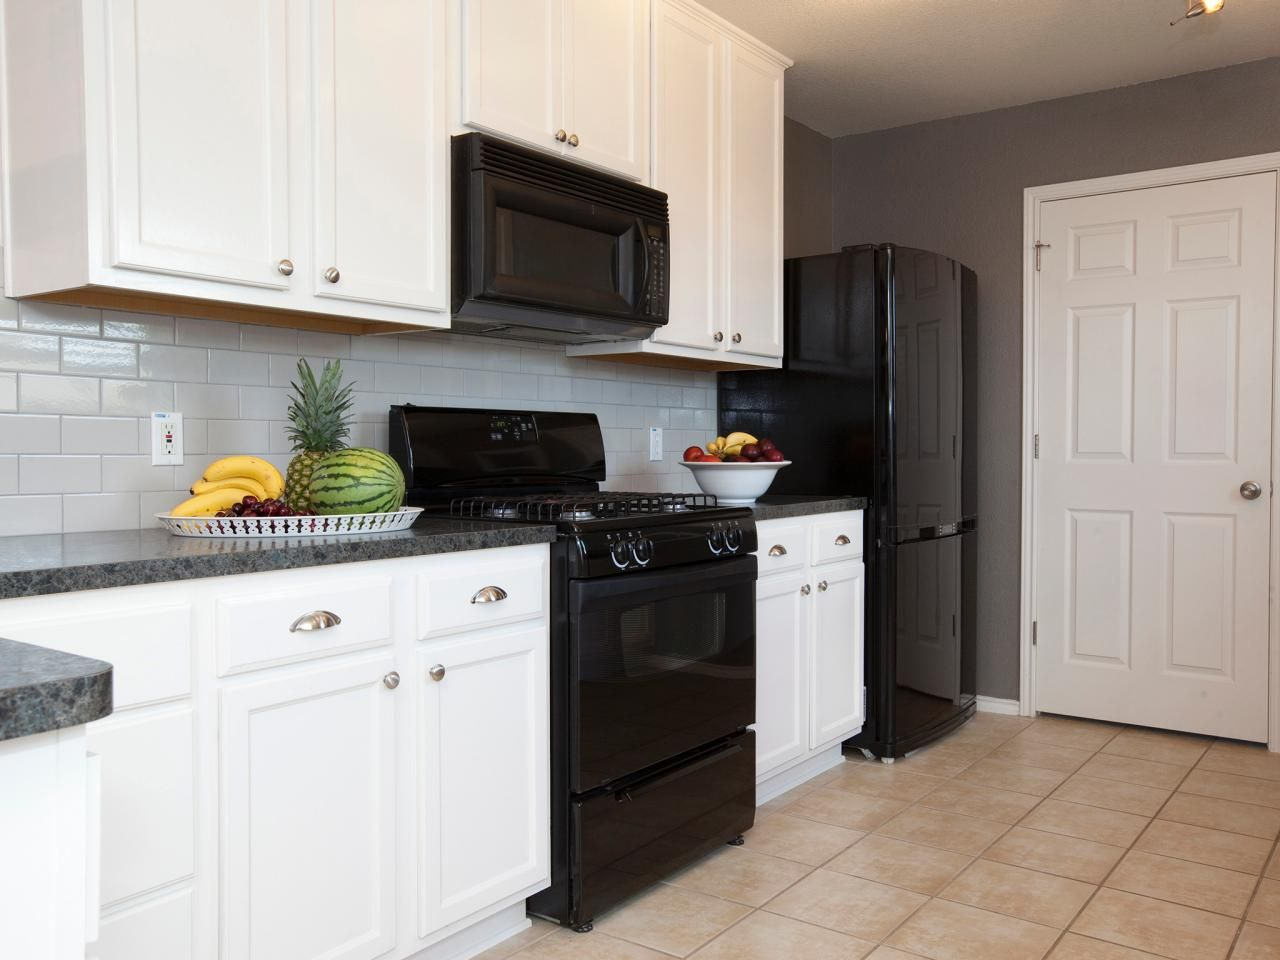 White Cabinets And Black Kitchen Appliances Pop Against The Gray Paint And Gray Su White Cabinets Black Appliances Black Appliances Kitchen Kitchen Wall Colors